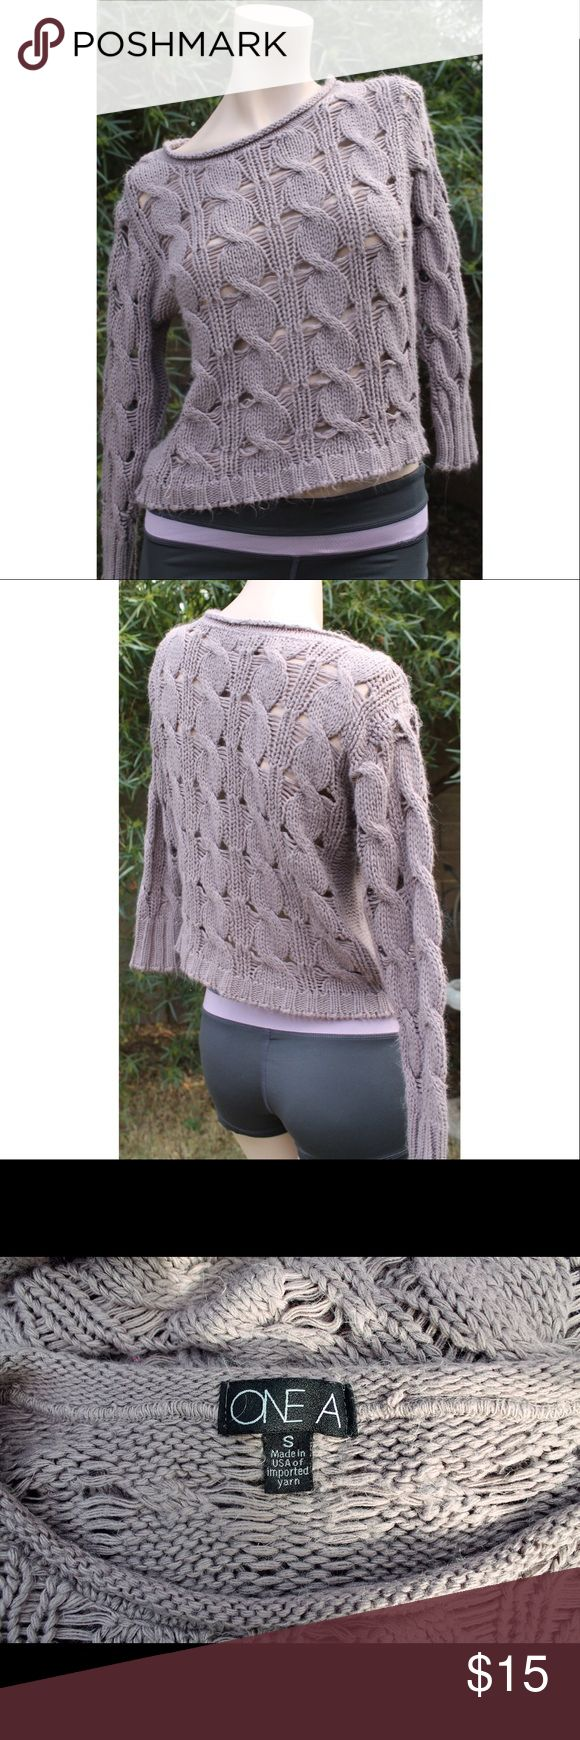 Nordstrom Mauve Braided Sweater Size Small Braided Detail Sweater. Size Small. Good Condition - One Loose Thread. Nordstrom Sweaters Crew & Scoop Necks